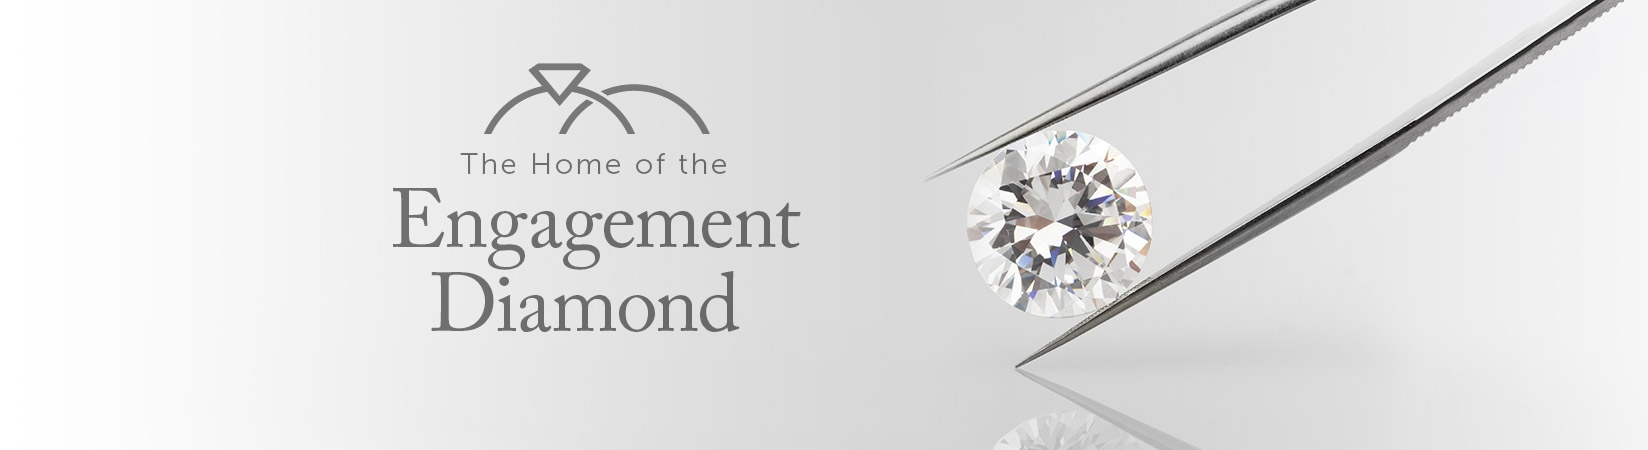 The Home of the Engagement Diamond